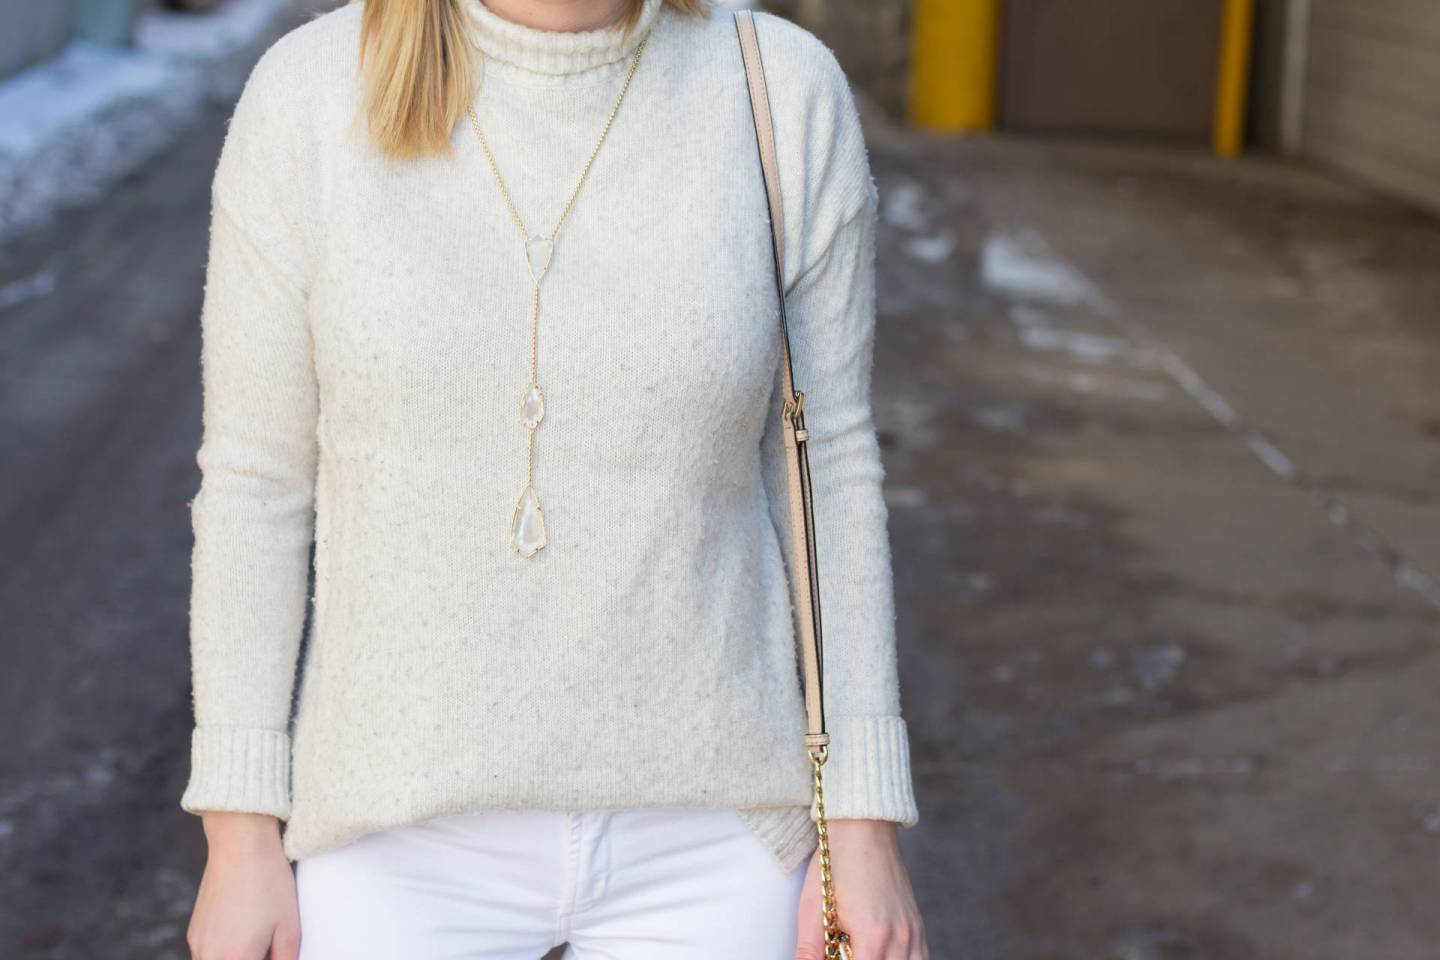 Kendra Scott Charlotte Necklace in Suspended Ivory Pearl